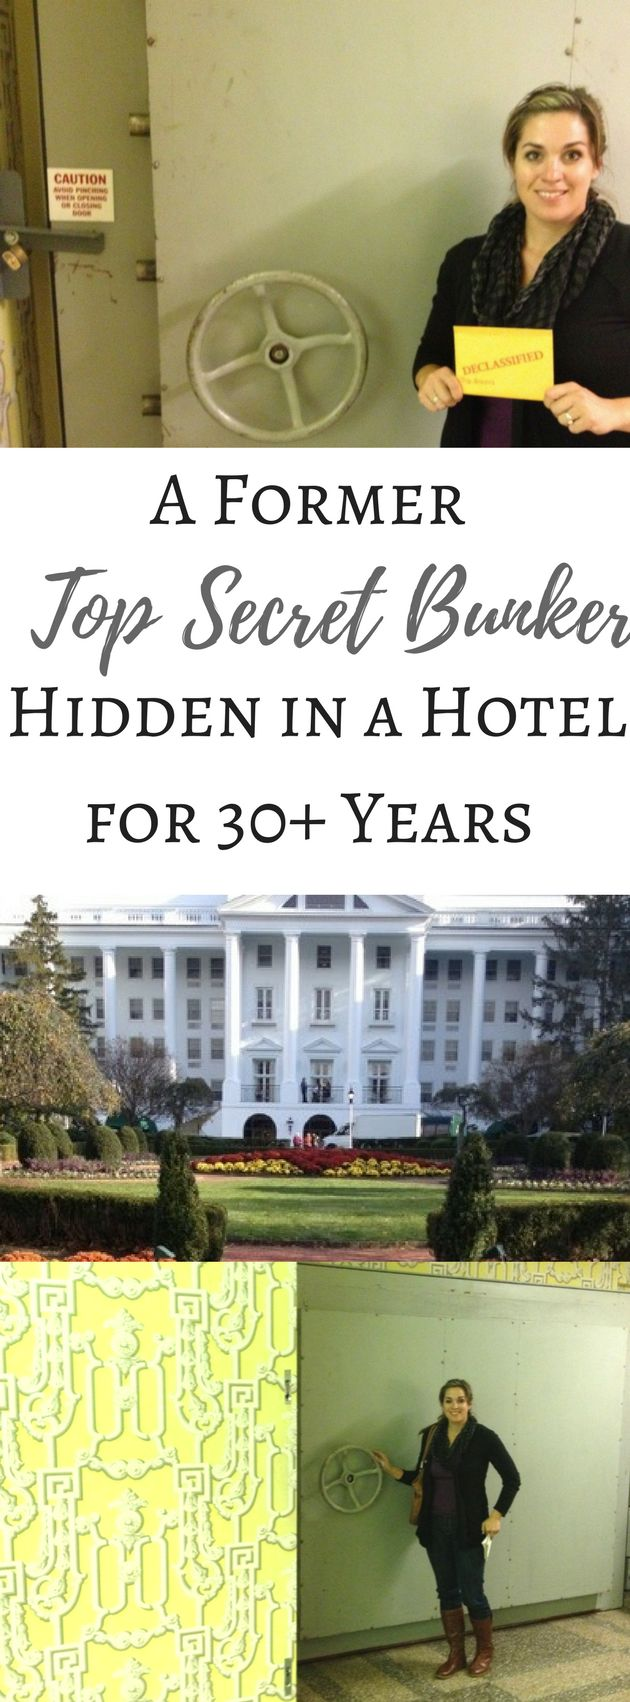 Tour the inside of a Top Secret Bunker hidden inside a hotel for more than 30+ years in West Virginia.